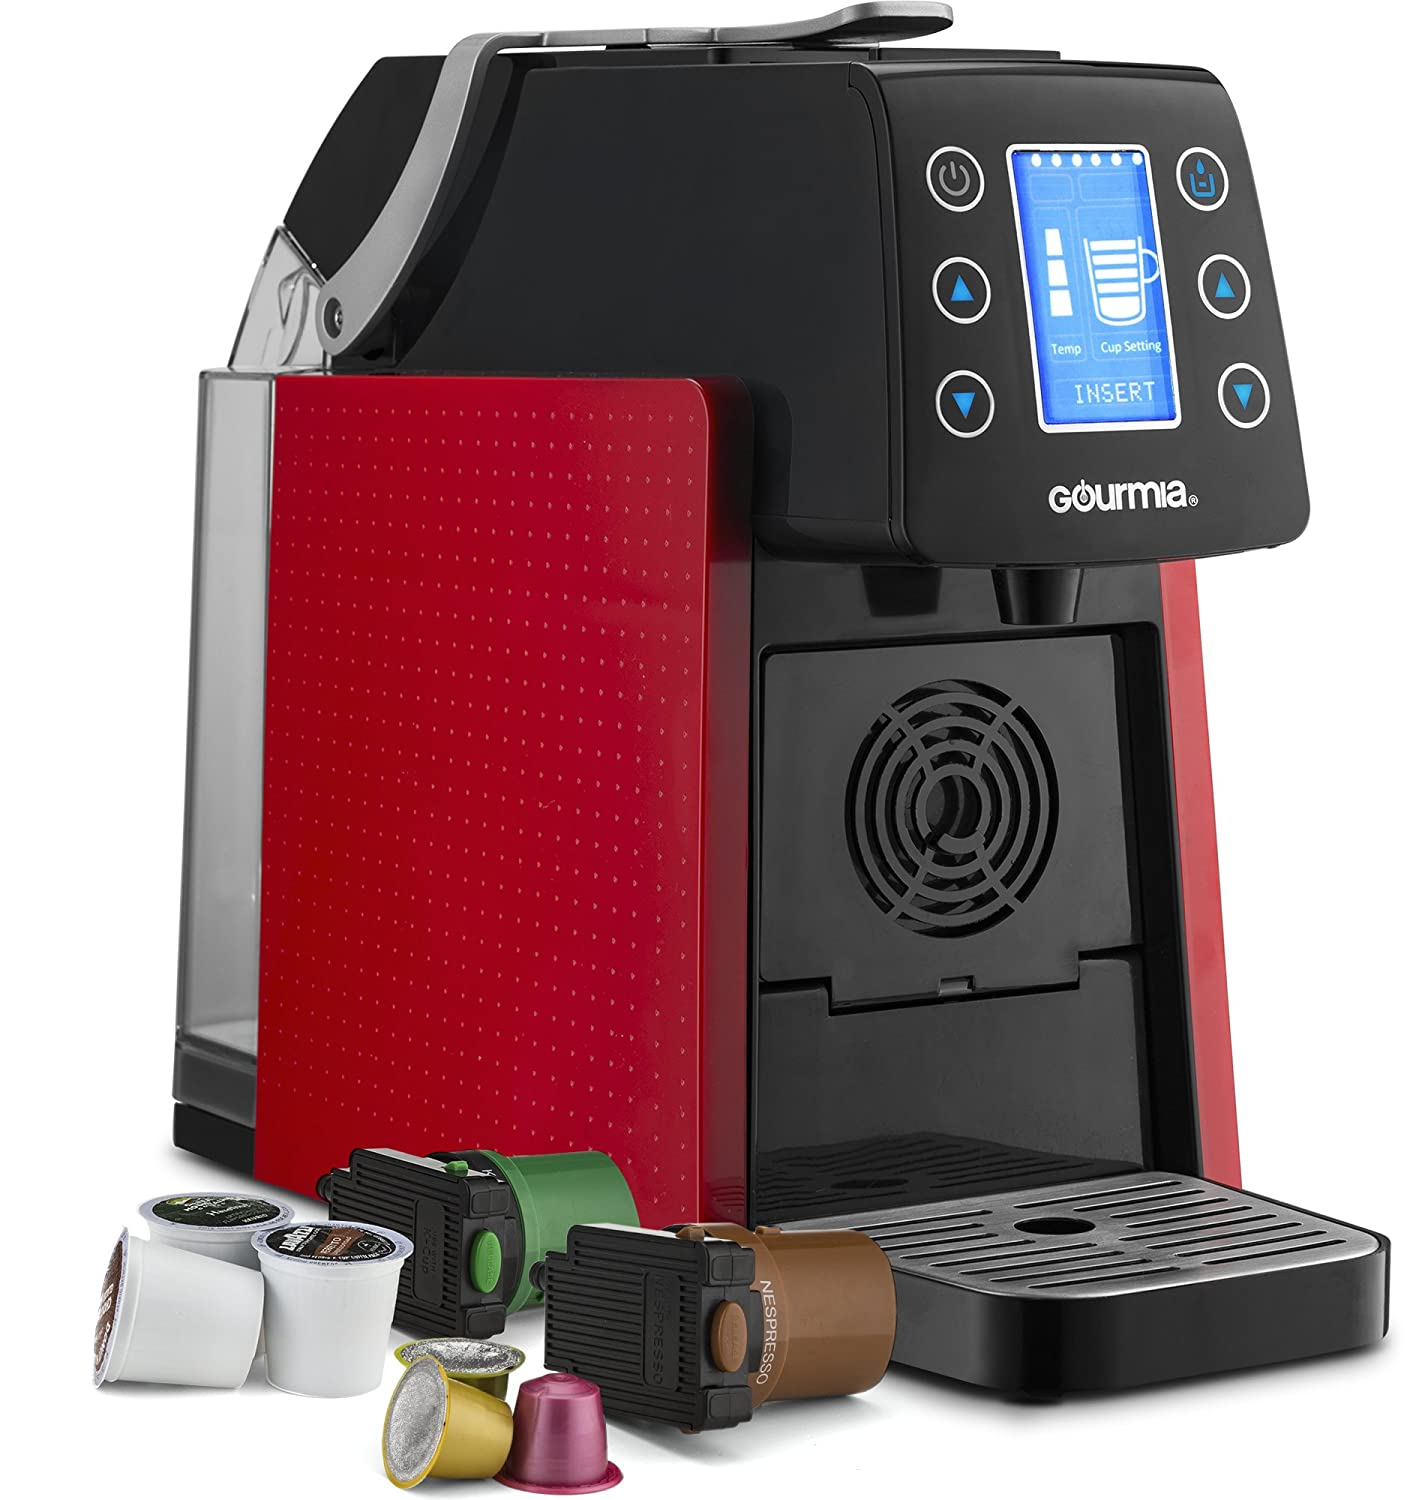 Gourmia GCM5100 One Touch Multi Capsule Coffee Machine, Compatible with Nespresso and K-Cup Pods, Adjustable Temperature & Cup Size, Digital Display, Demi Shot-Glass Tray -White